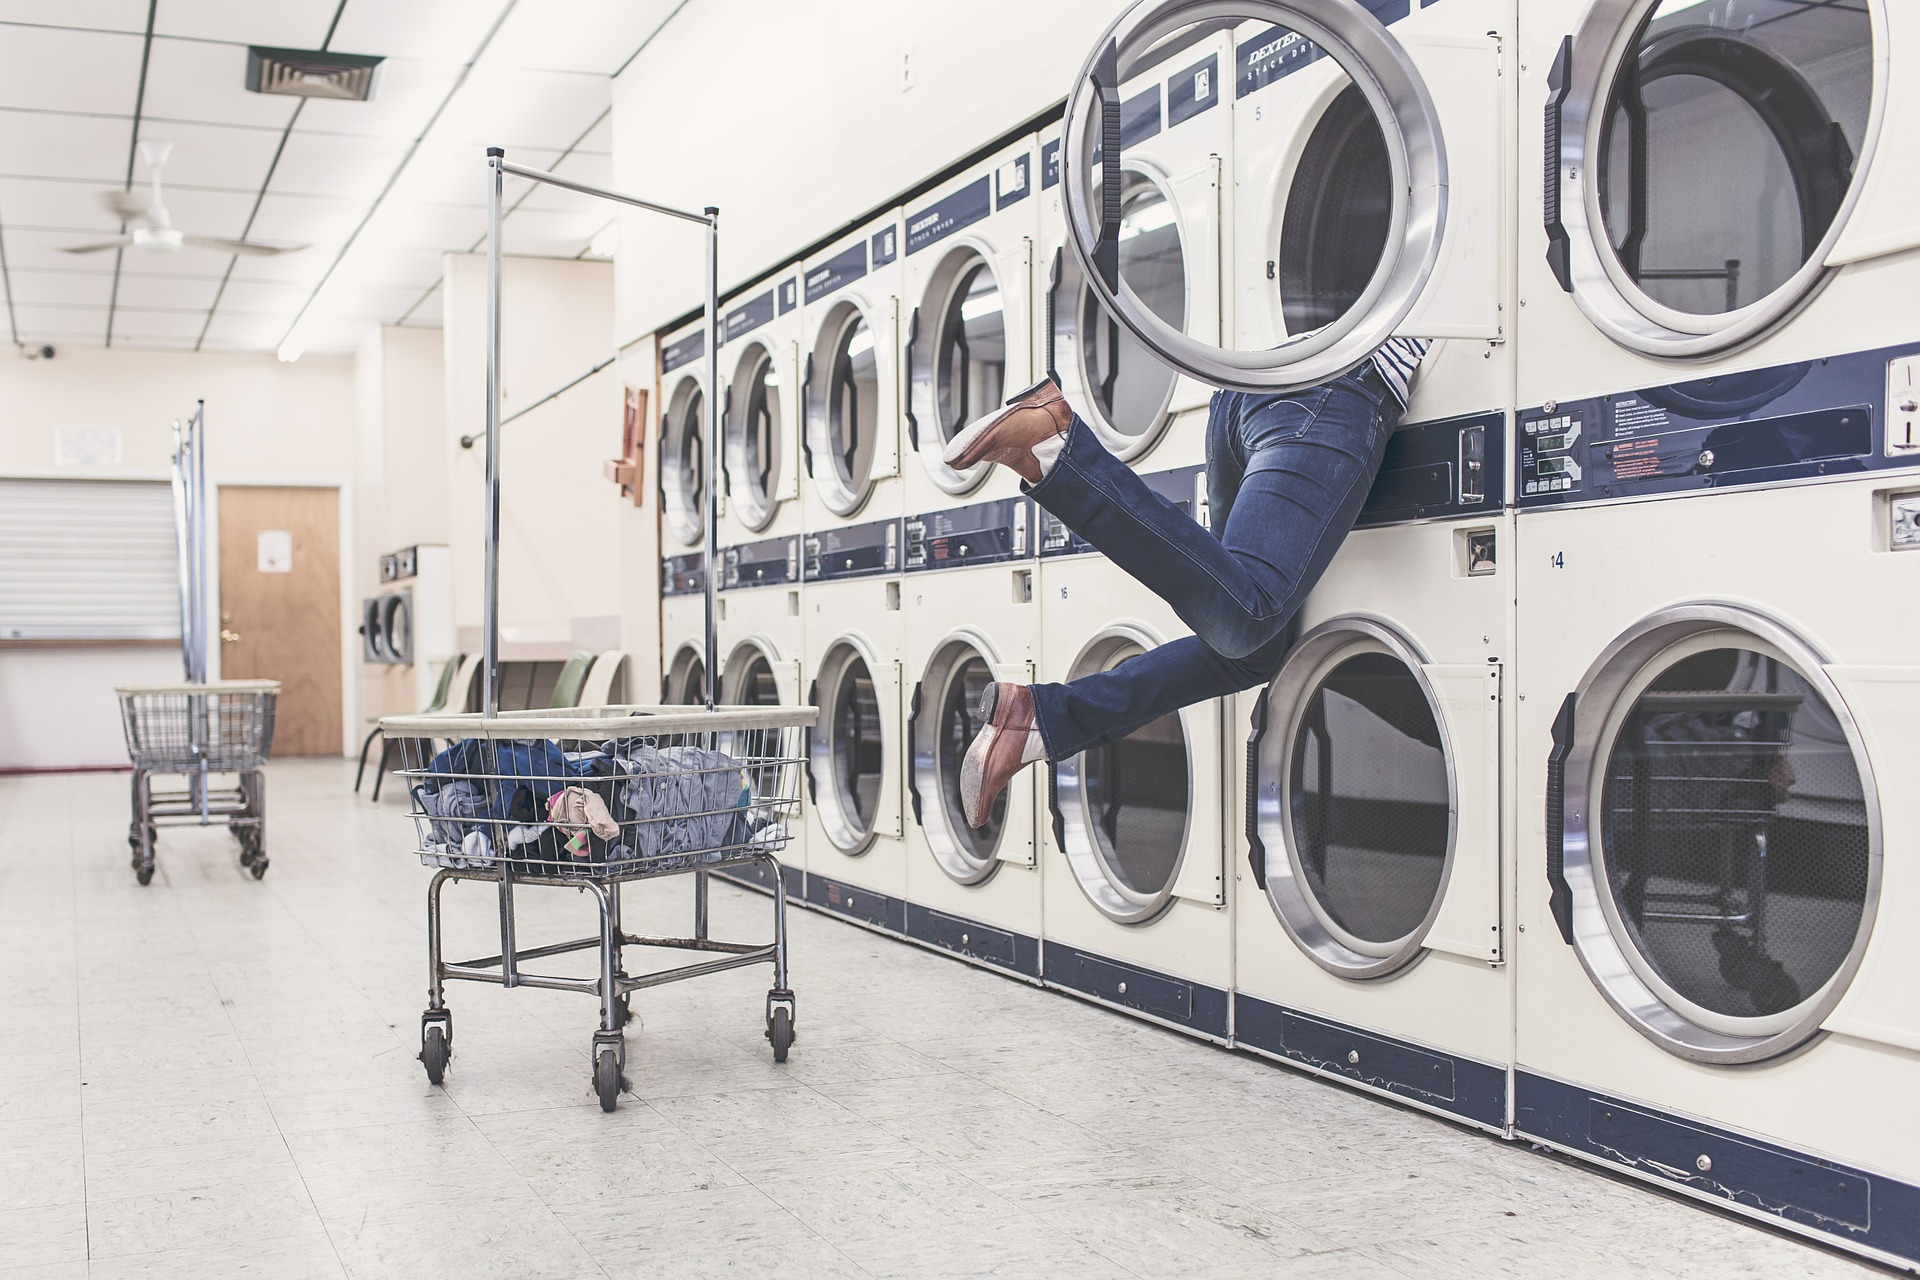 Washing Clothes Got You Down? 6 Must Haves To Do At A Laundry Mat